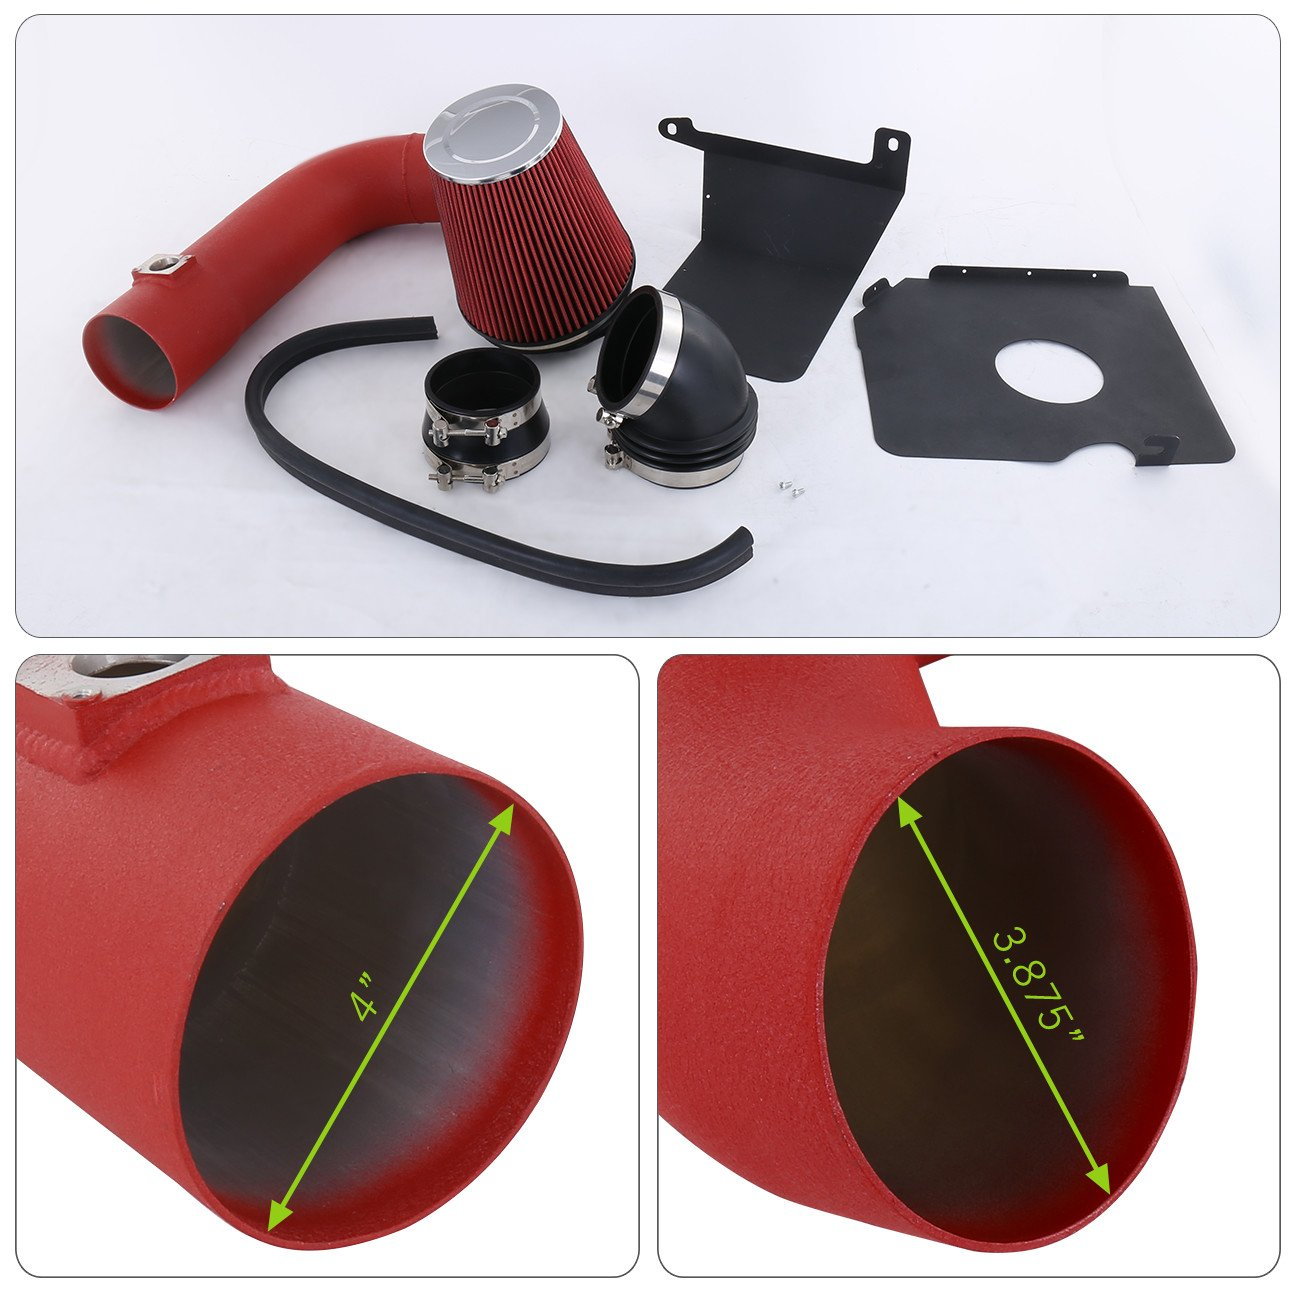 AJP Distributors For Chevy Silverado 2500Hd 3500 Gmc Sierra 2500Hd 3500 V8 6.6L High Flow Induction Air Intake System Heat Shield Red Wrinkle Piping Kit